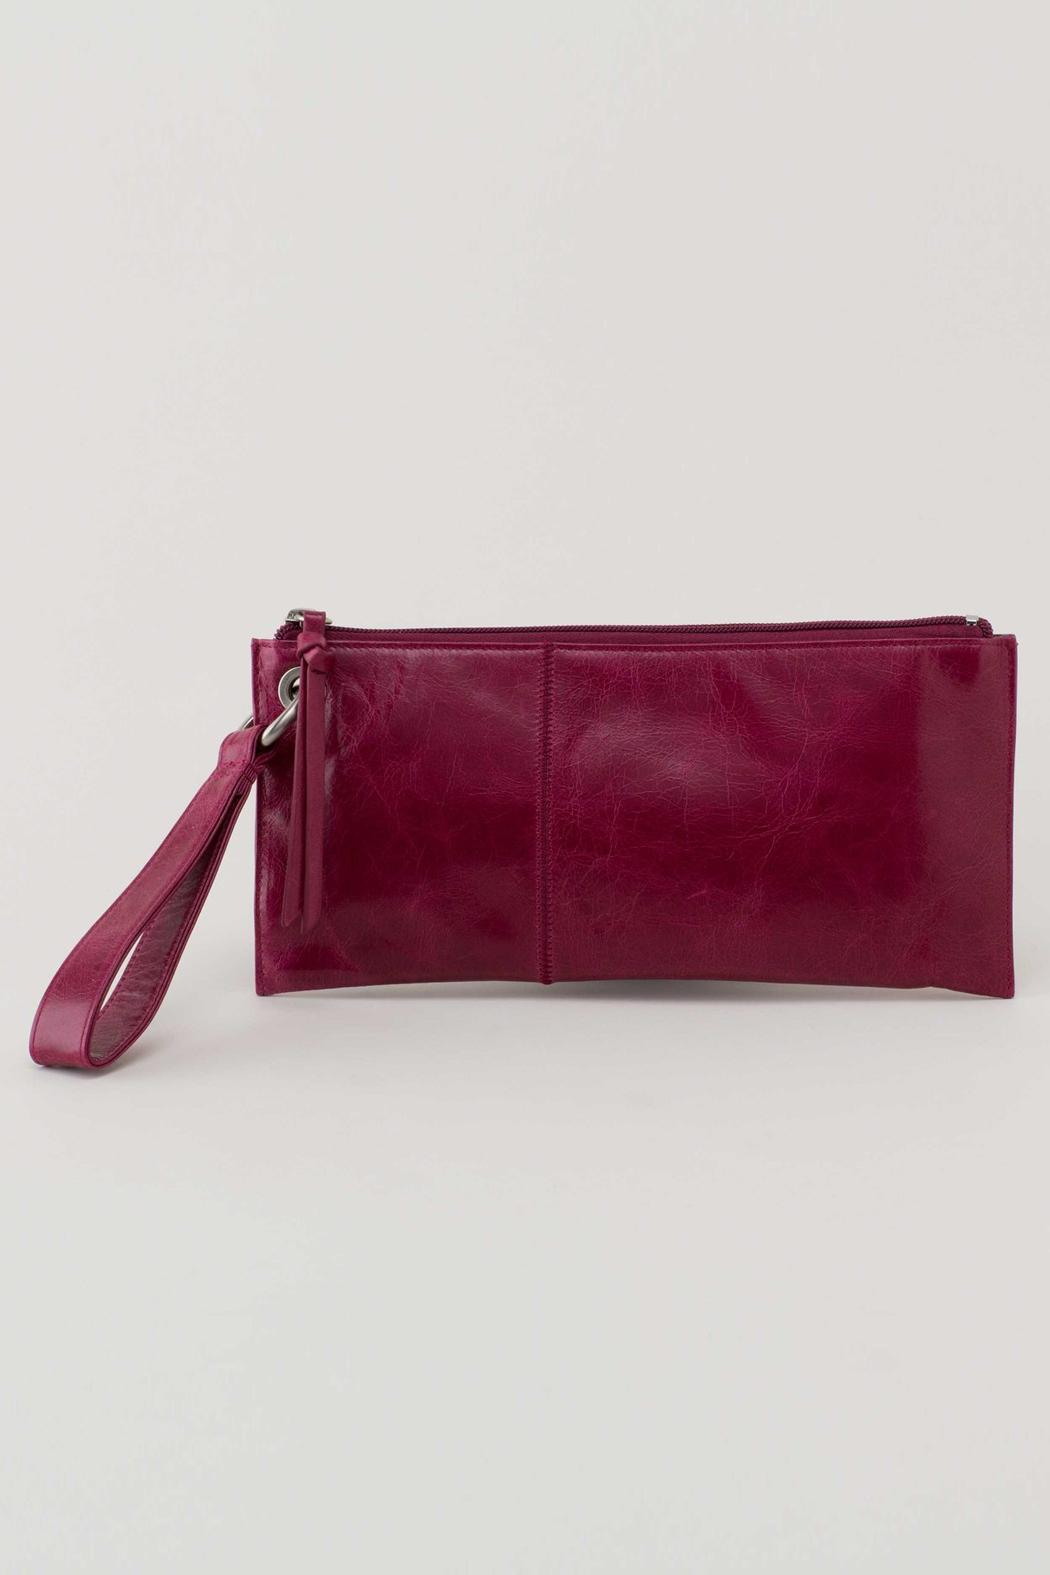 VIDA Statement Clutch - Tiles by VIDA